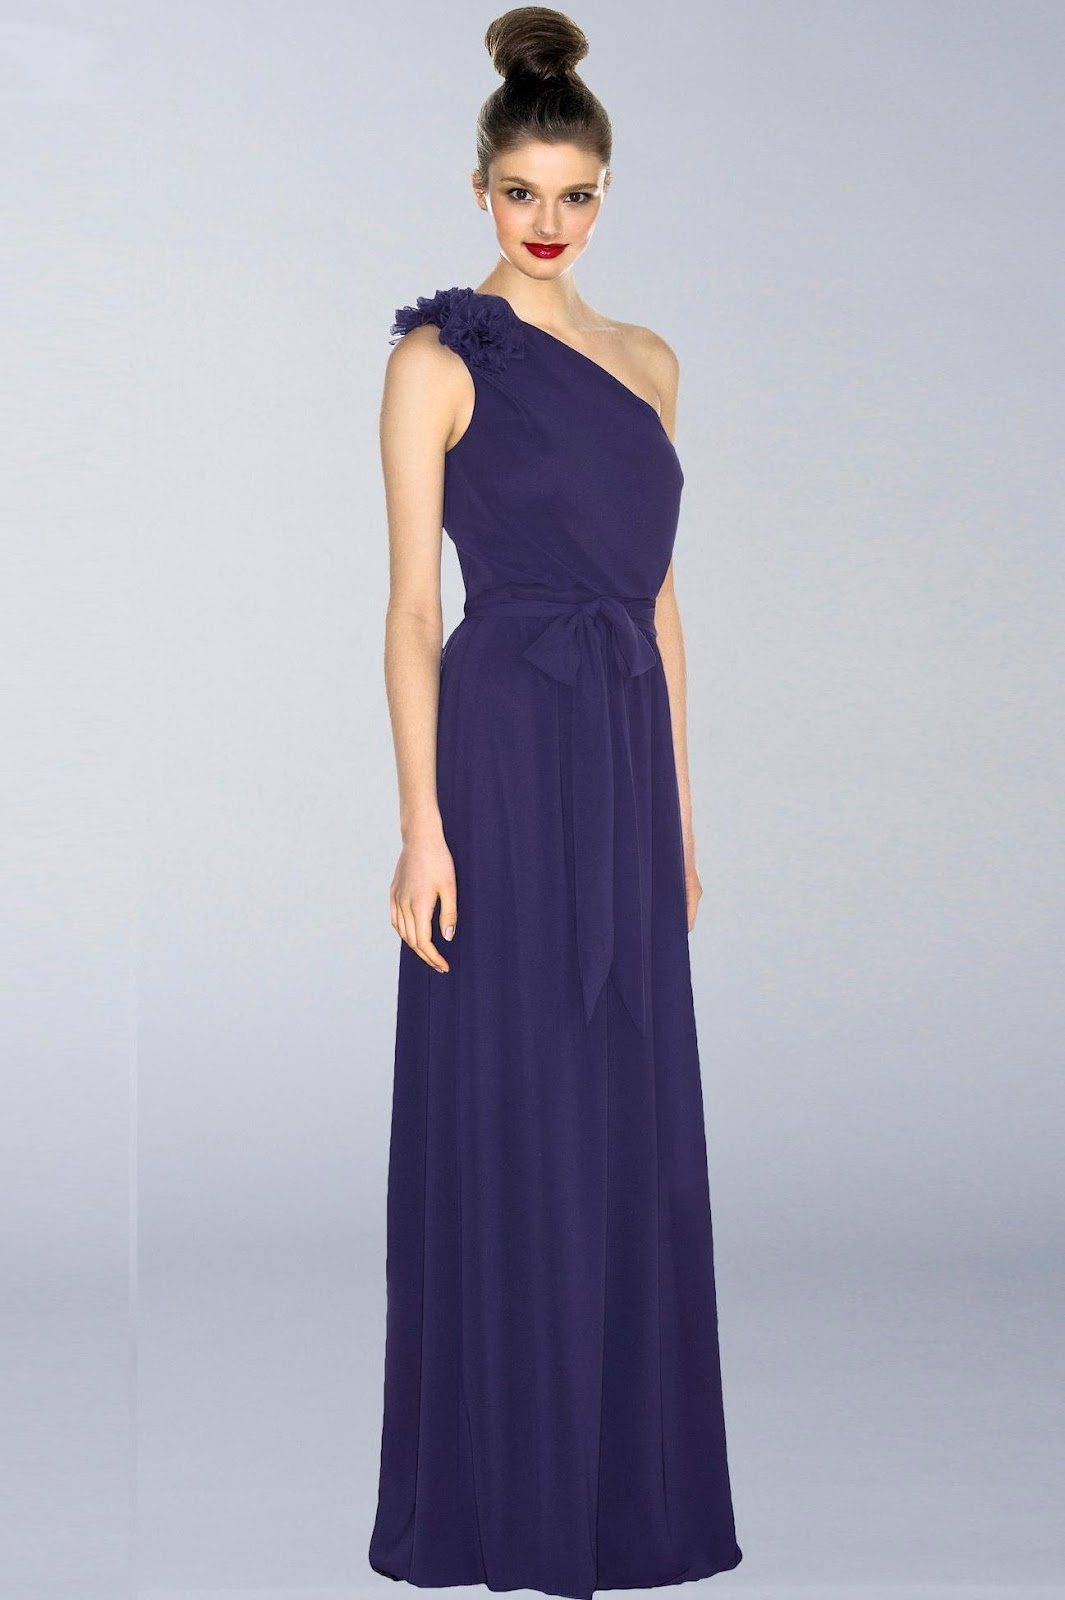 waist Purple Bridesmaid